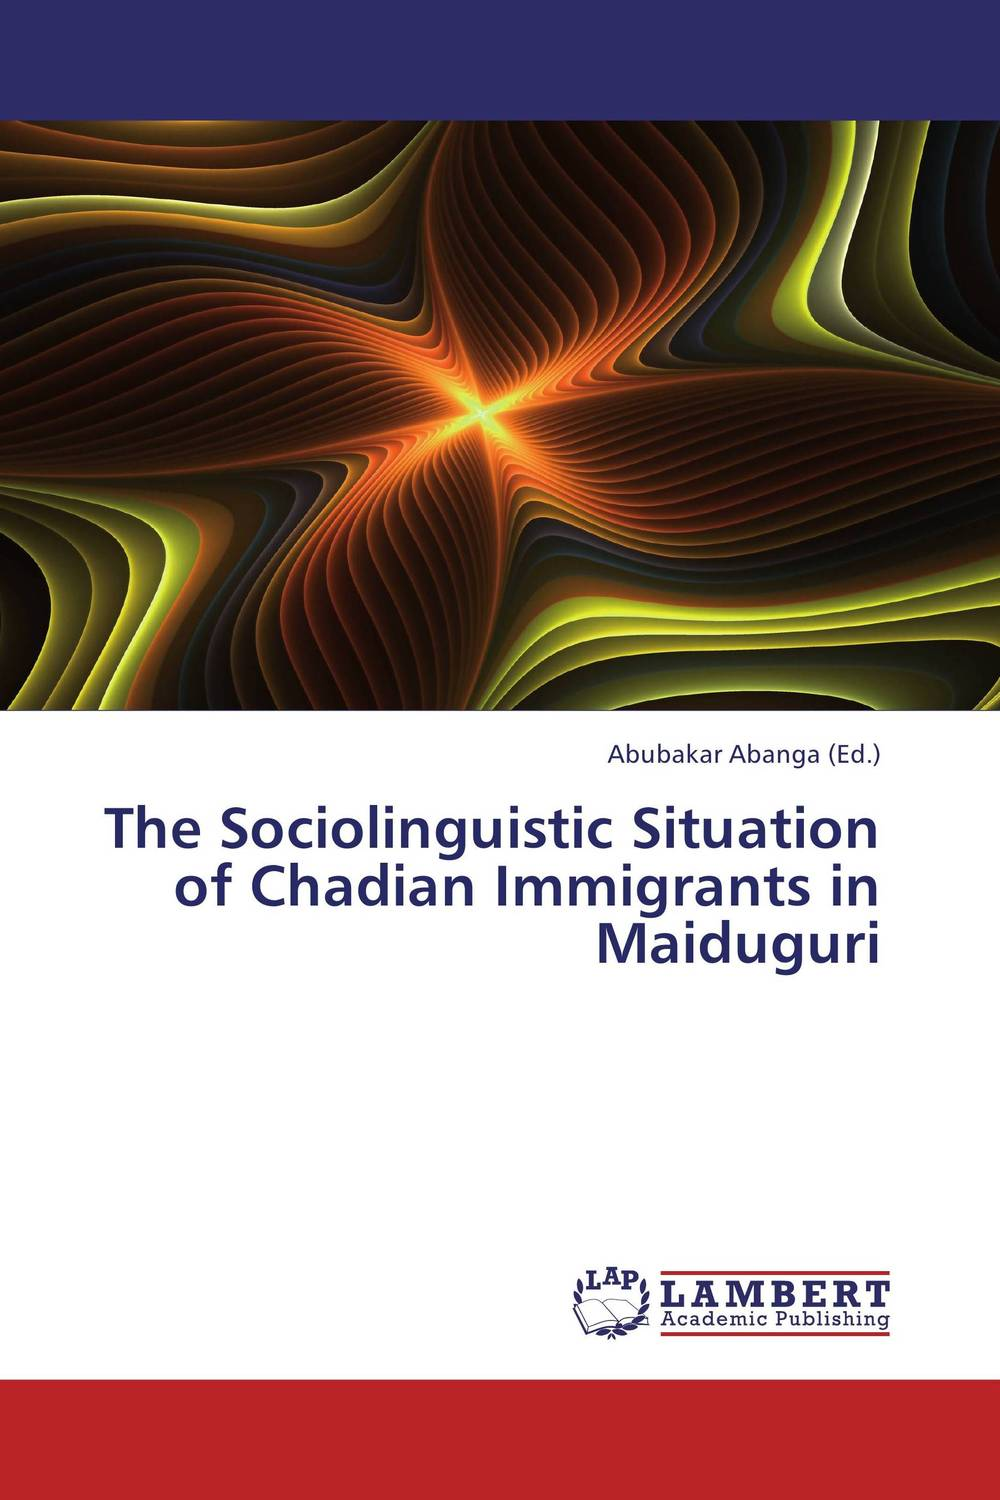 The Sociolinguistic Situation of Chadian Immigrants in Maiduguri found in brooklyn